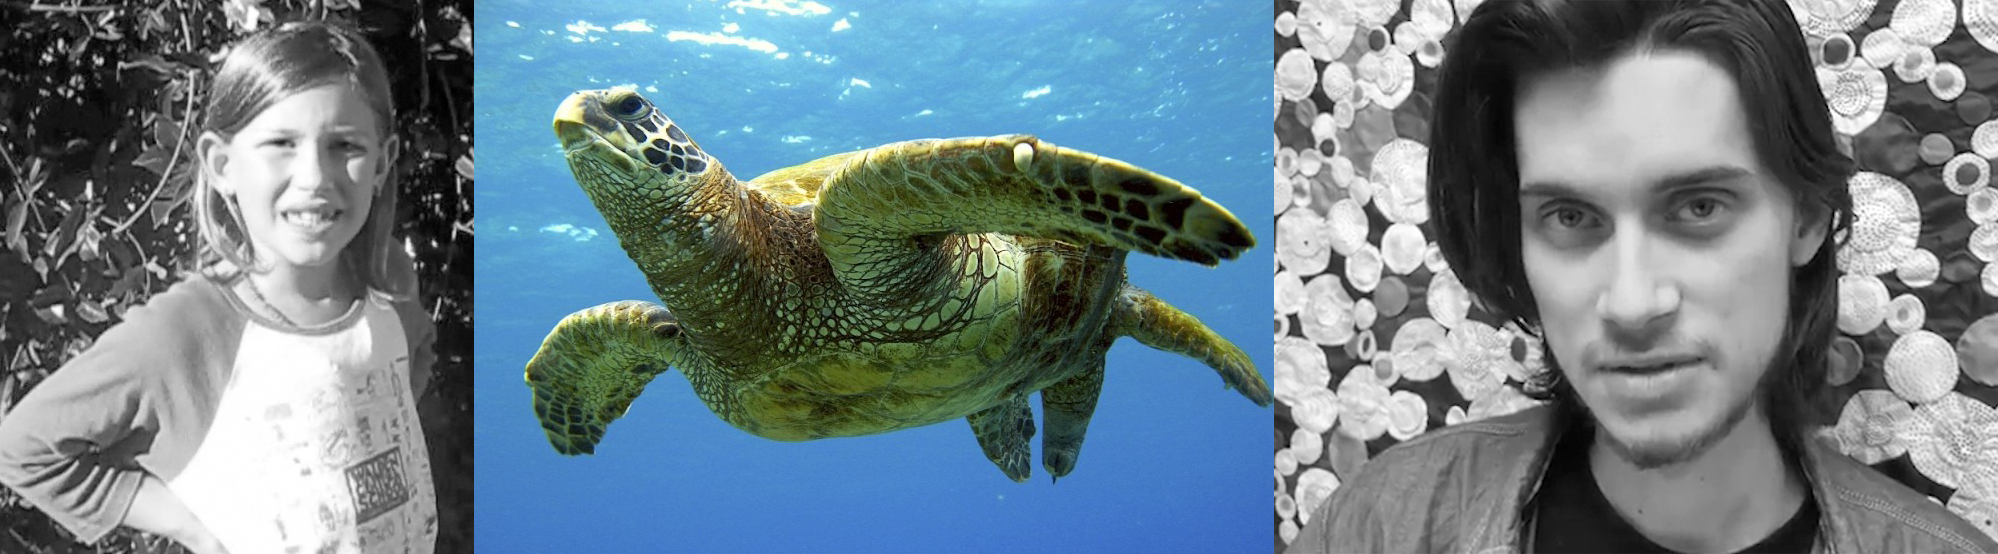 SAVE SEA TURTLES    LEARN MORE